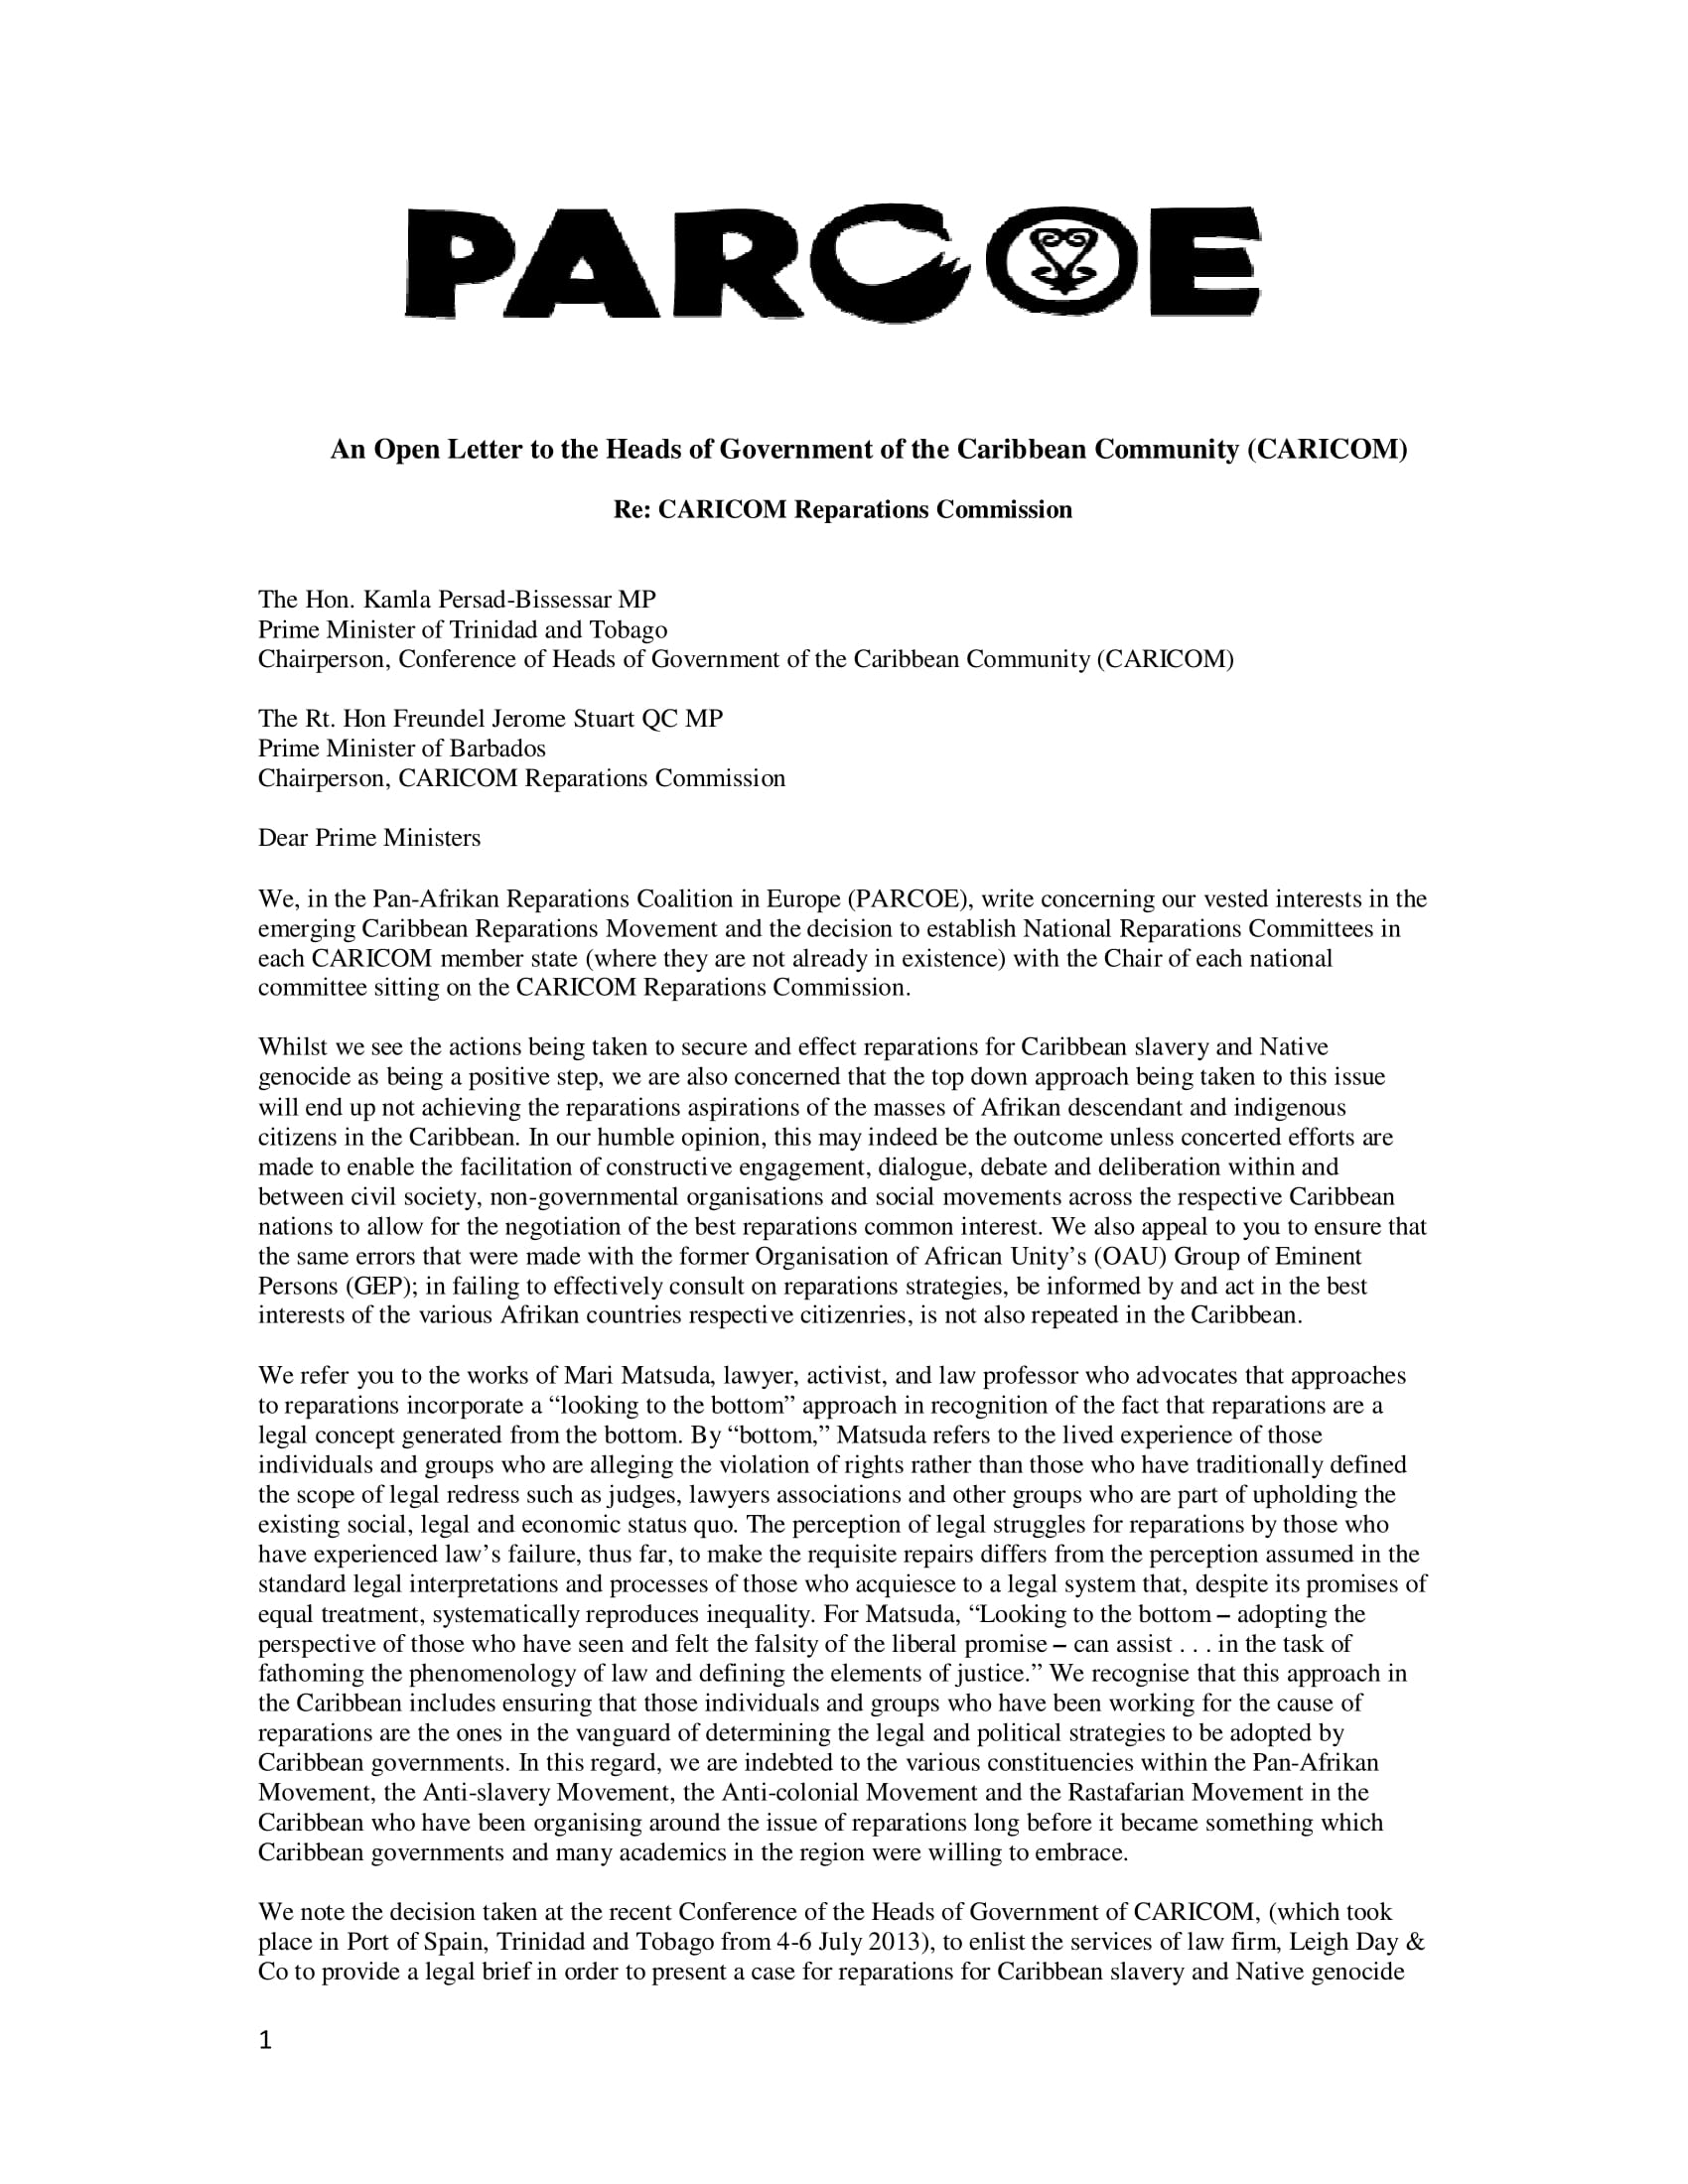 PARCOE Open Letter to CARICOM Heads of Government corrected version-1